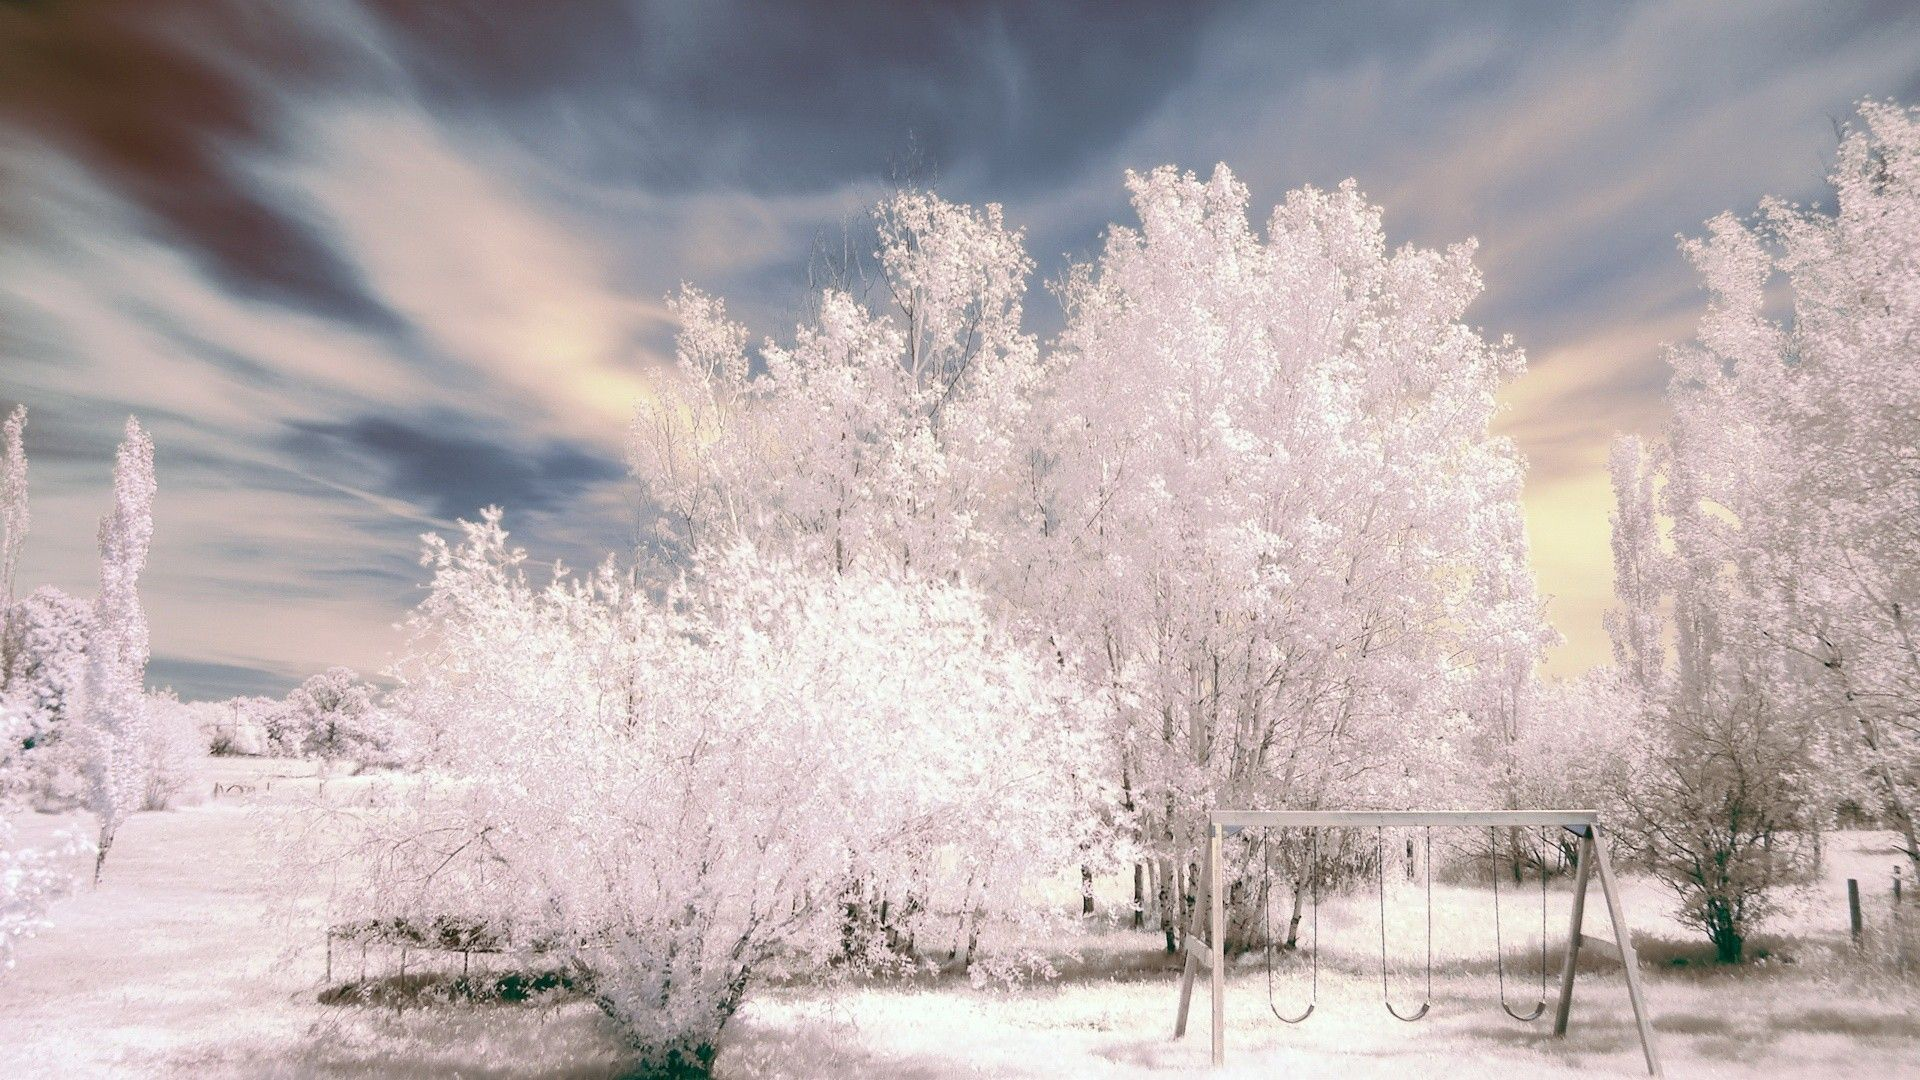 Landscapes Nature Winter Season Trees HDR Photography 1920x1080 Wallpaper